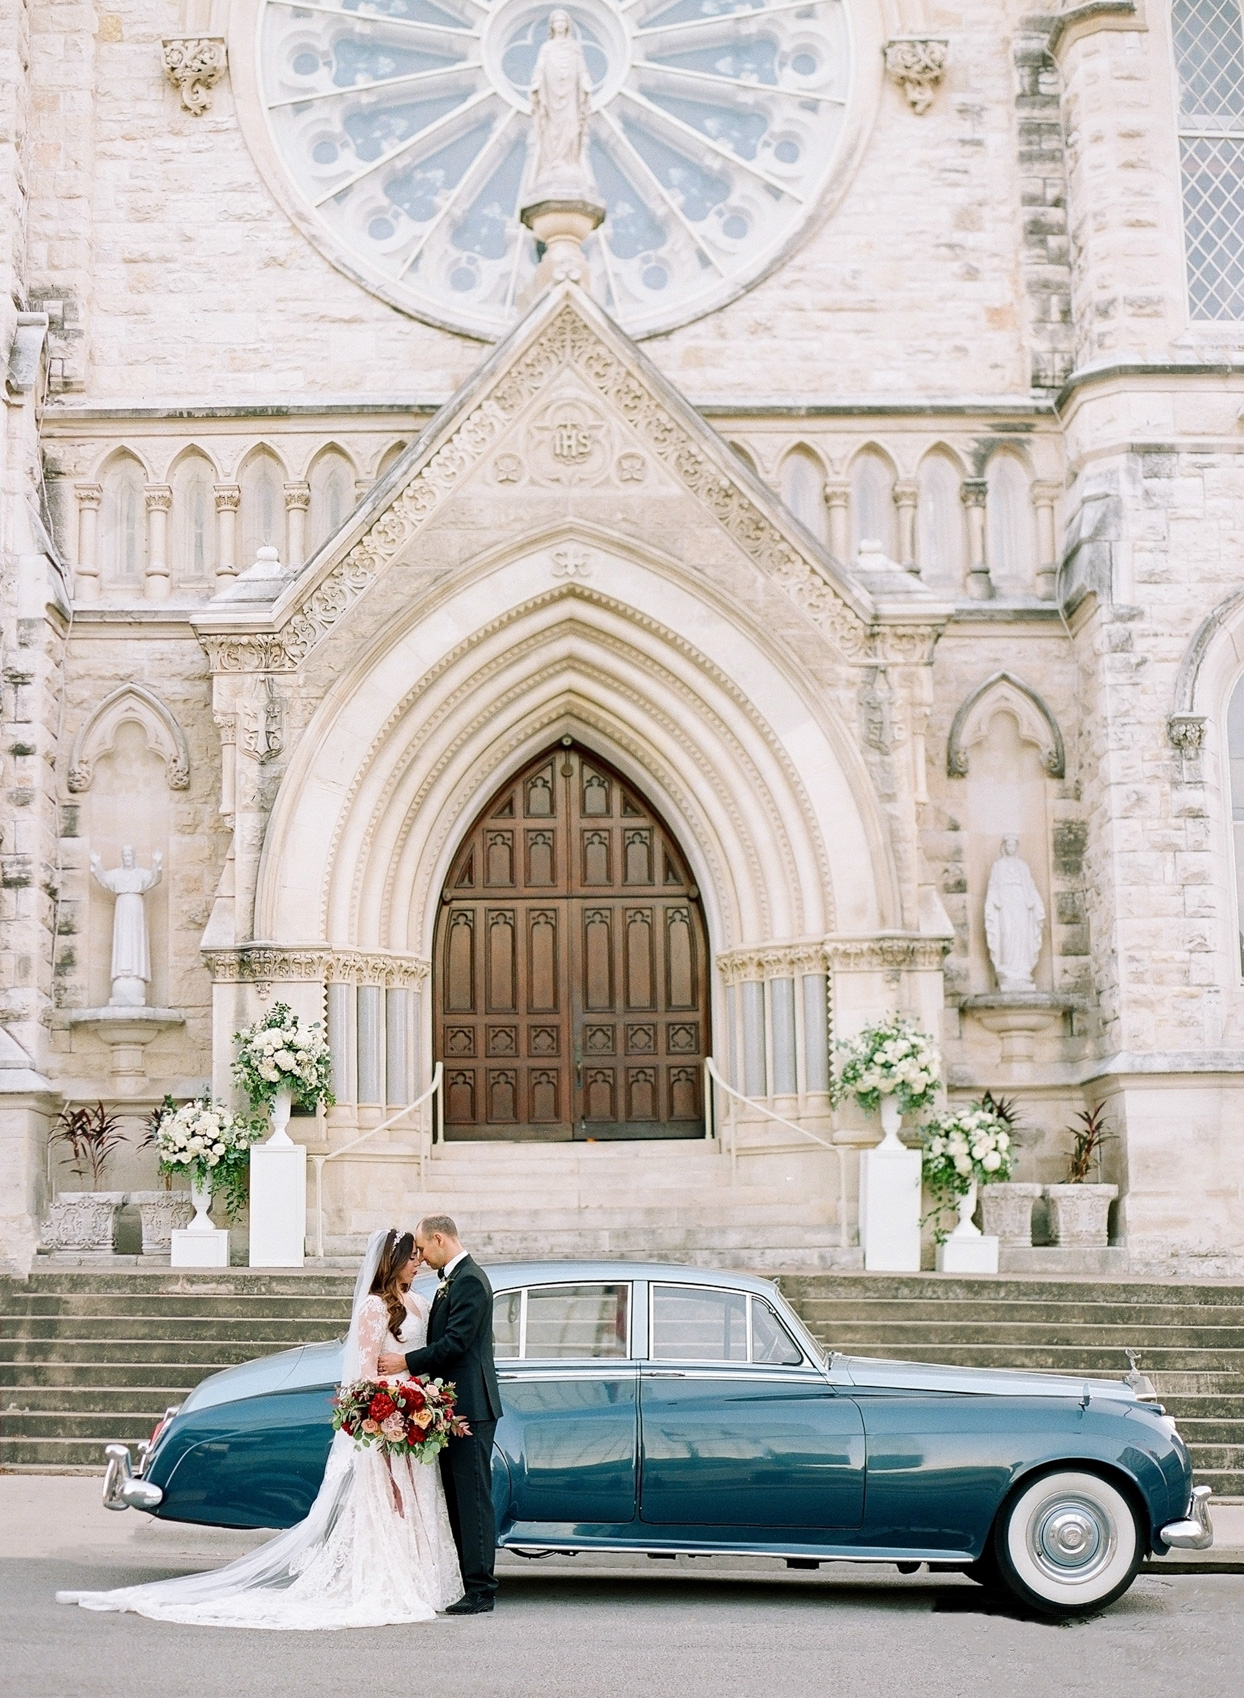 wedding couple posting in front of antique car and church